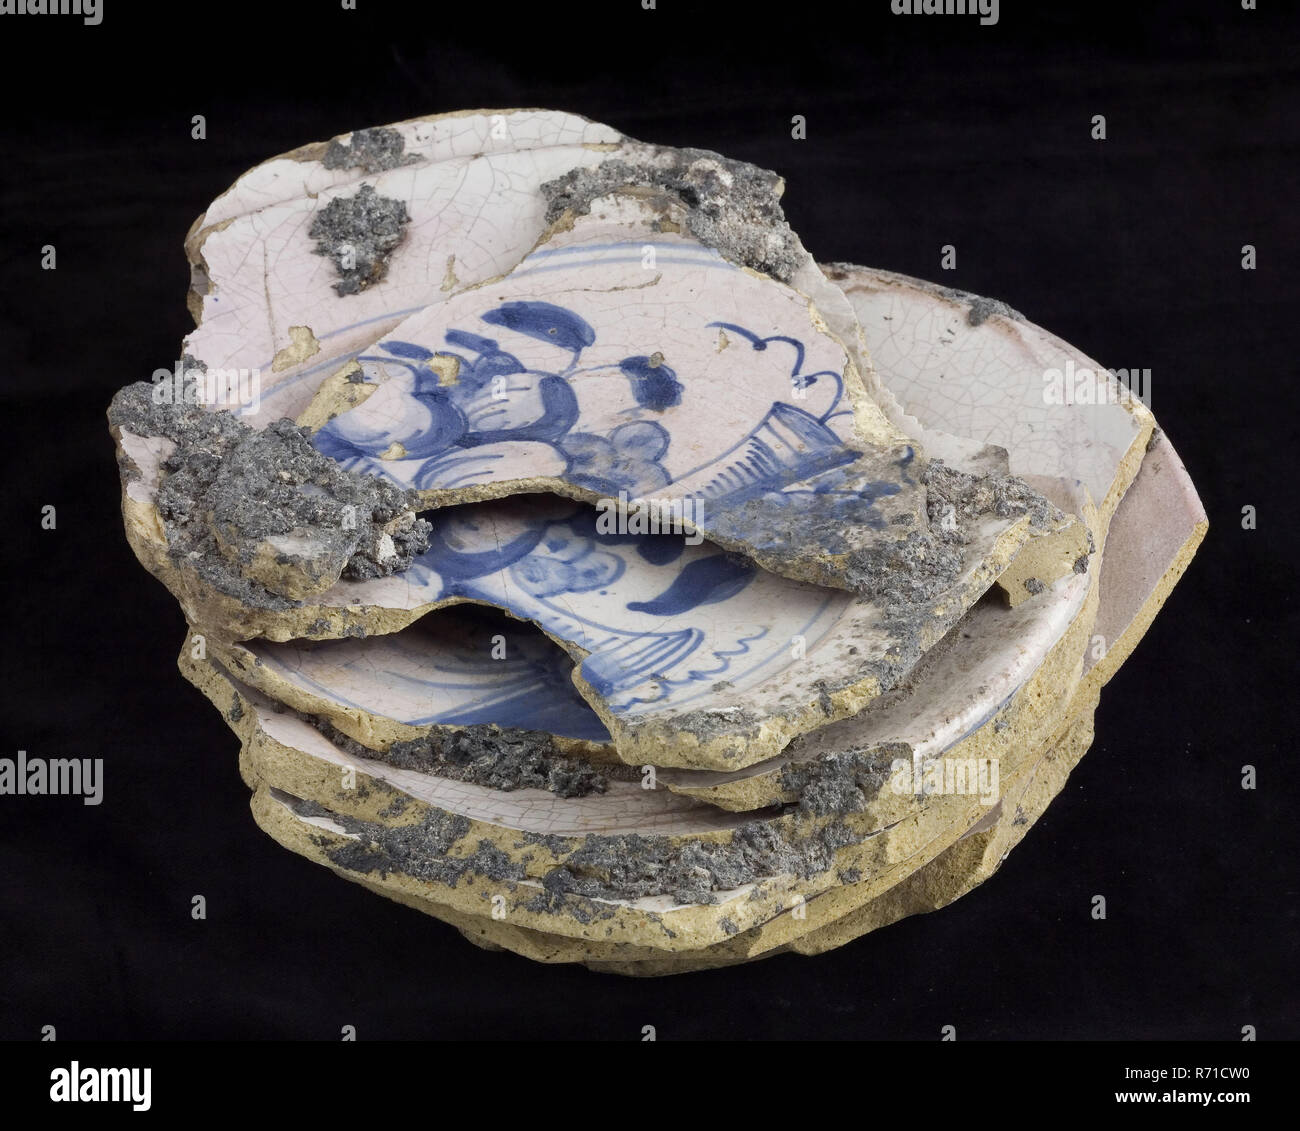 Stack of nine faience plates, baked misbakels with fruit as decor, plate crockery holder soil find ceramic earthenware enamel tinglage, hand turned fried glazed decorated baked Pile of miscandes. Faience plates or delft pottery. Yellow shard entirely covered with tin glaze Decorated in blue on white fond decoration consists of two blue circles in the shoulder and in the mirror vase in the middle of fruit. Stand surface Only slanted sides at the bottom shoulder at the top between mirror and flag. Baked earthenware. Misbaksels: the plates are broken and melted together. Discoloration of enamel a - Stock Image